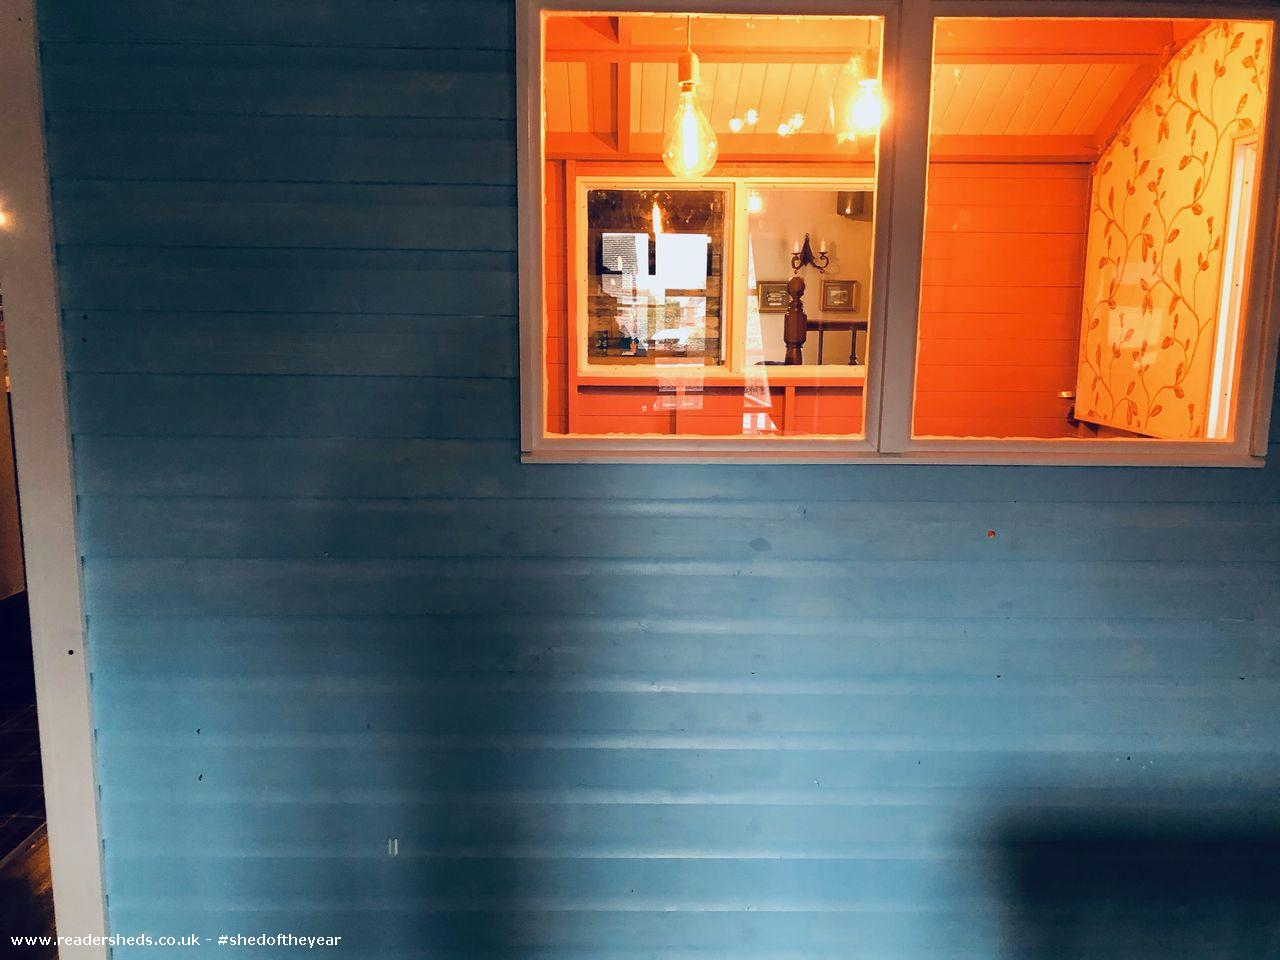 Photo of Bombay Blue, entry to Shed of the year